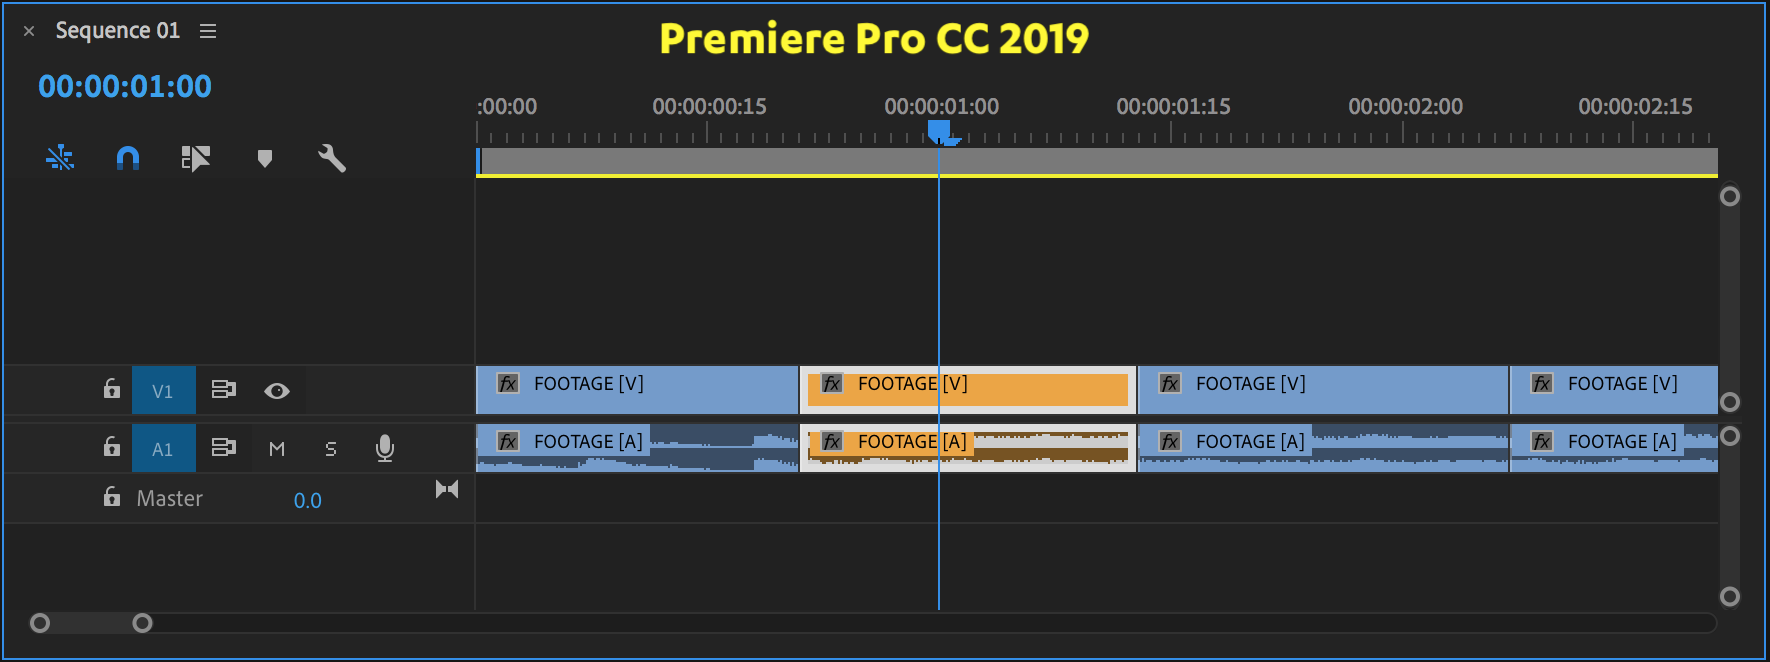 label-color-premiere-pro-cc-2019.png